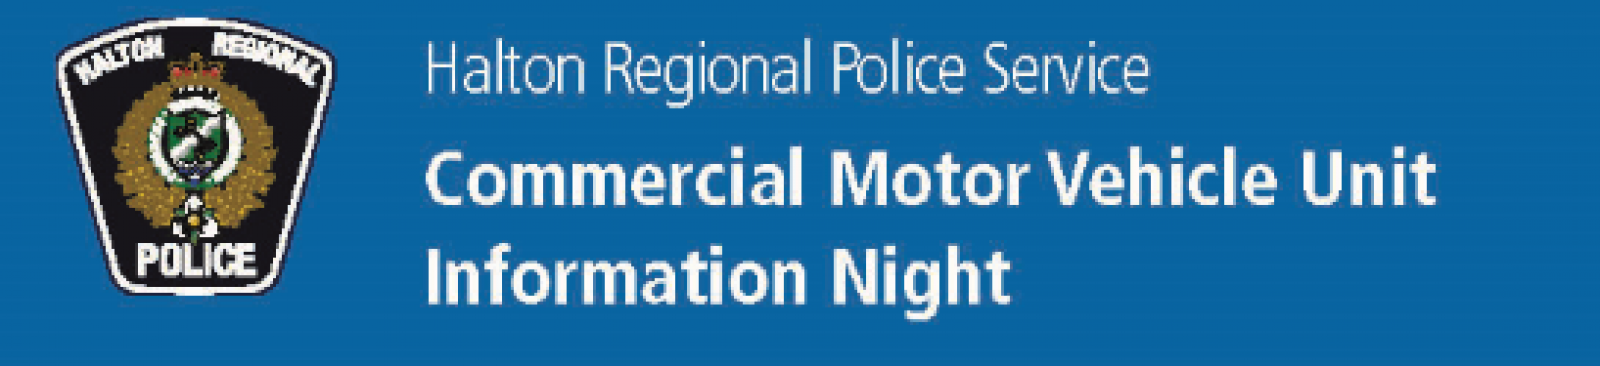 Commercial vehicle safety information night